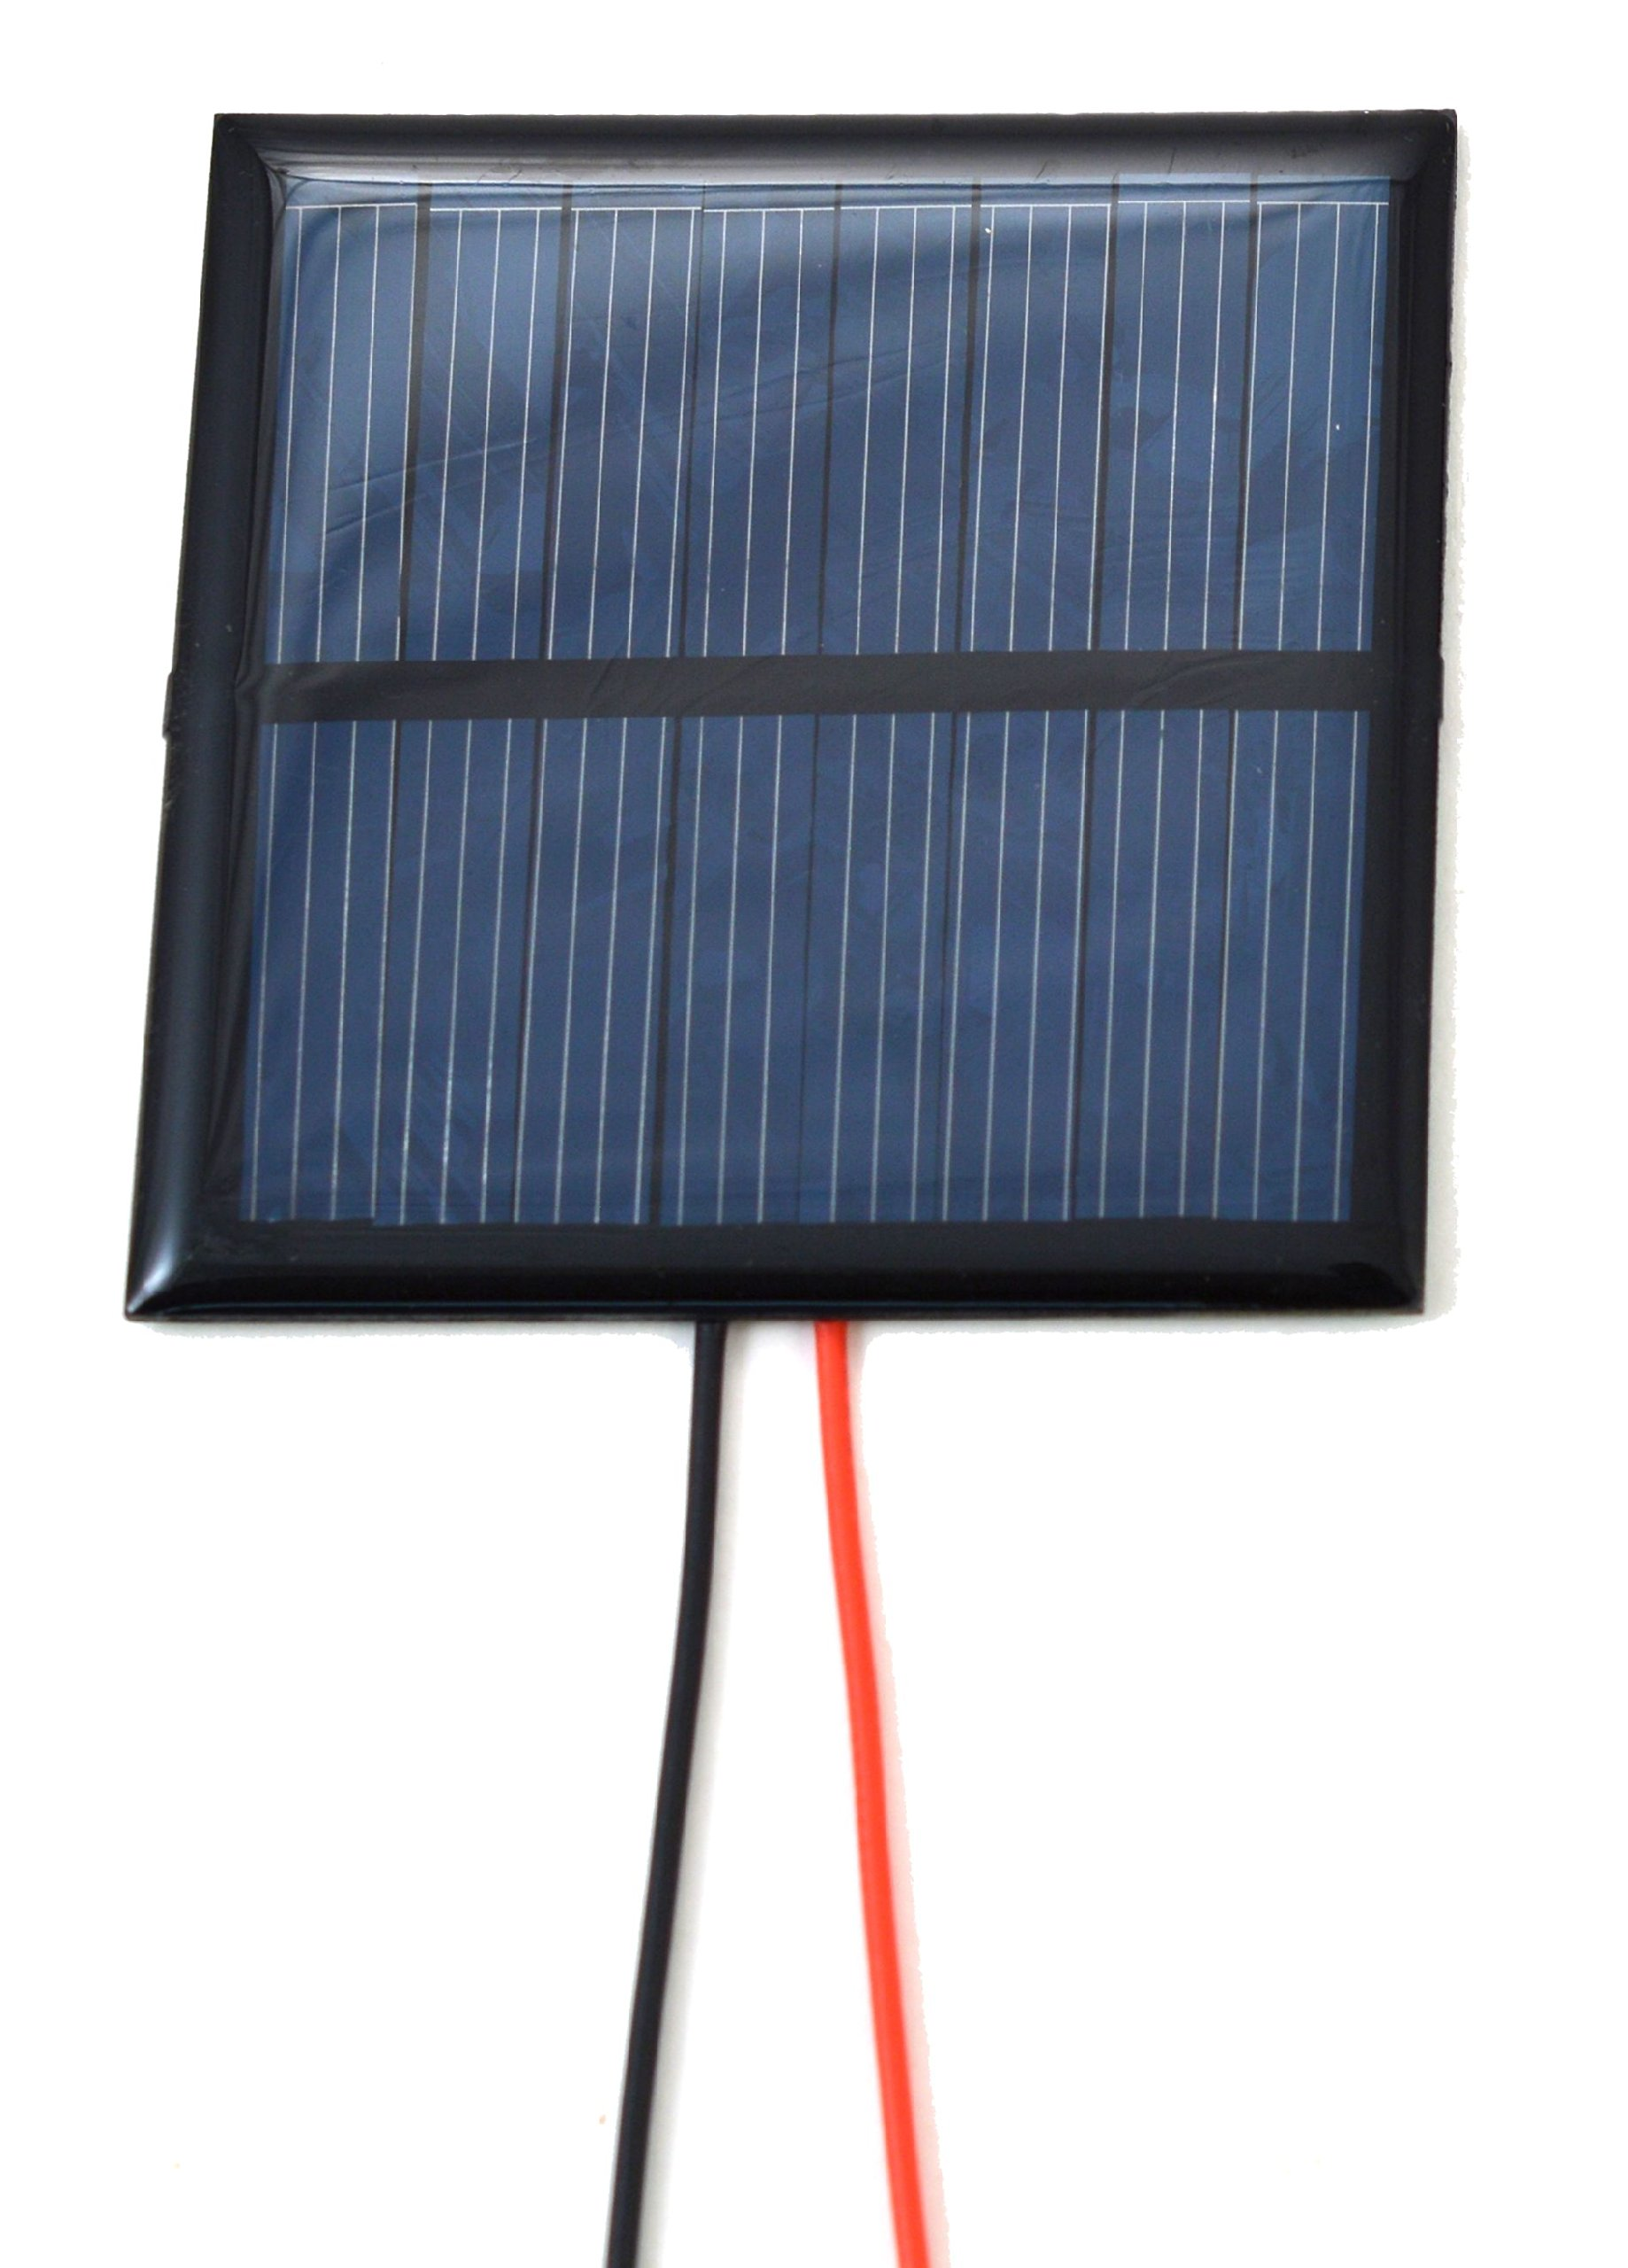 wiring up small solar panels block and schematic diagrams \u2022 solar panel installation diagram small solar panel 4 0v 100ma with wires 7108172548122 ebay rh ebay com solar panel wiring configurations solar combiner box wiring diagram